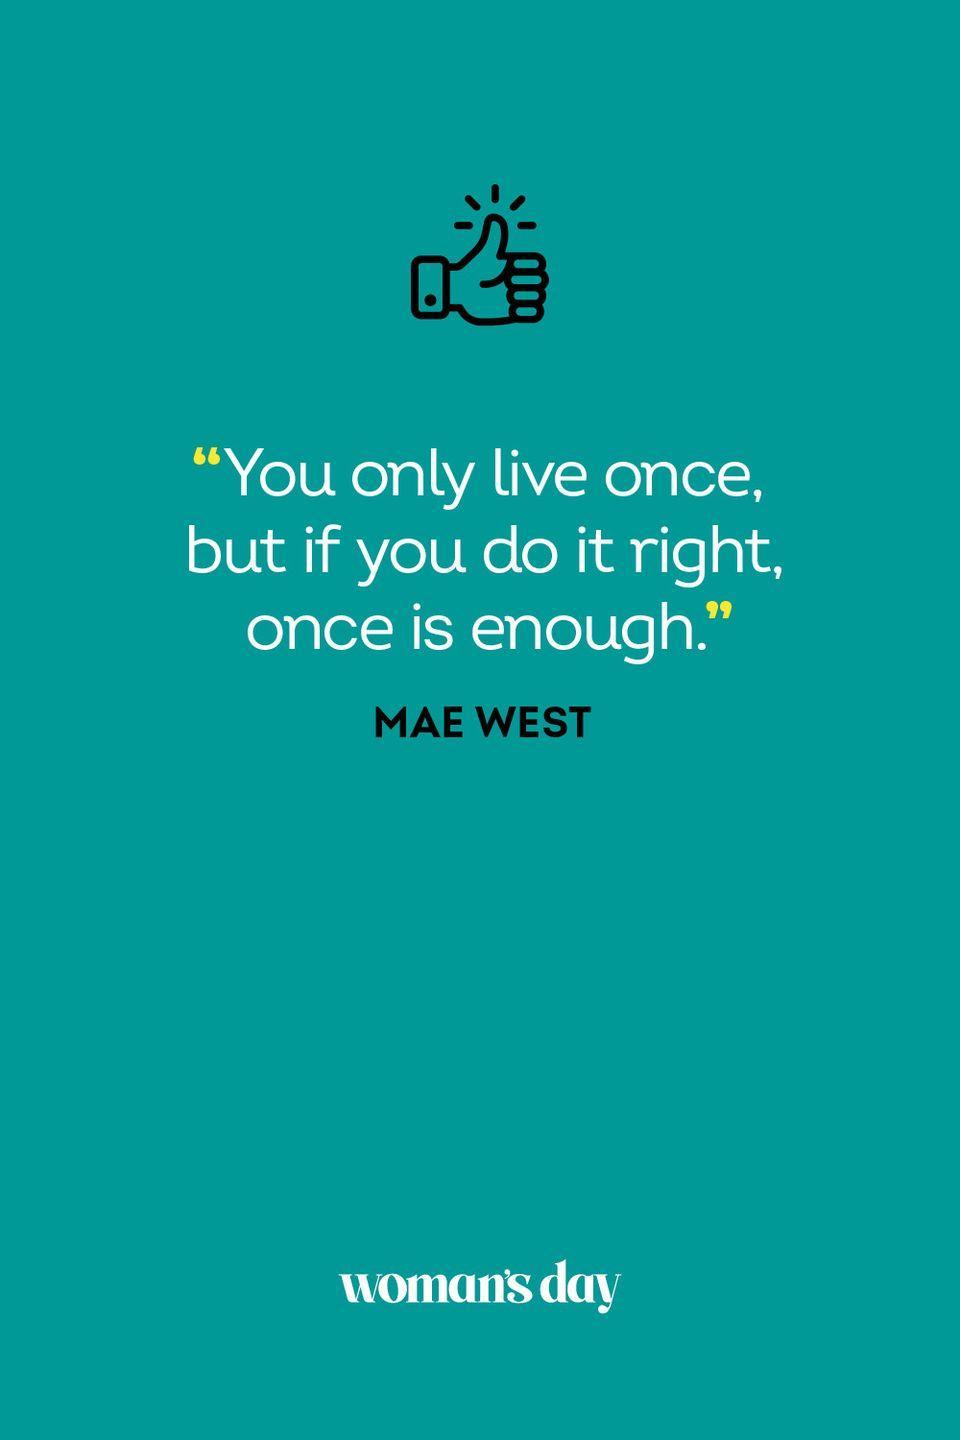 <p>You only live once, but if you do it right, once is enough.</p>